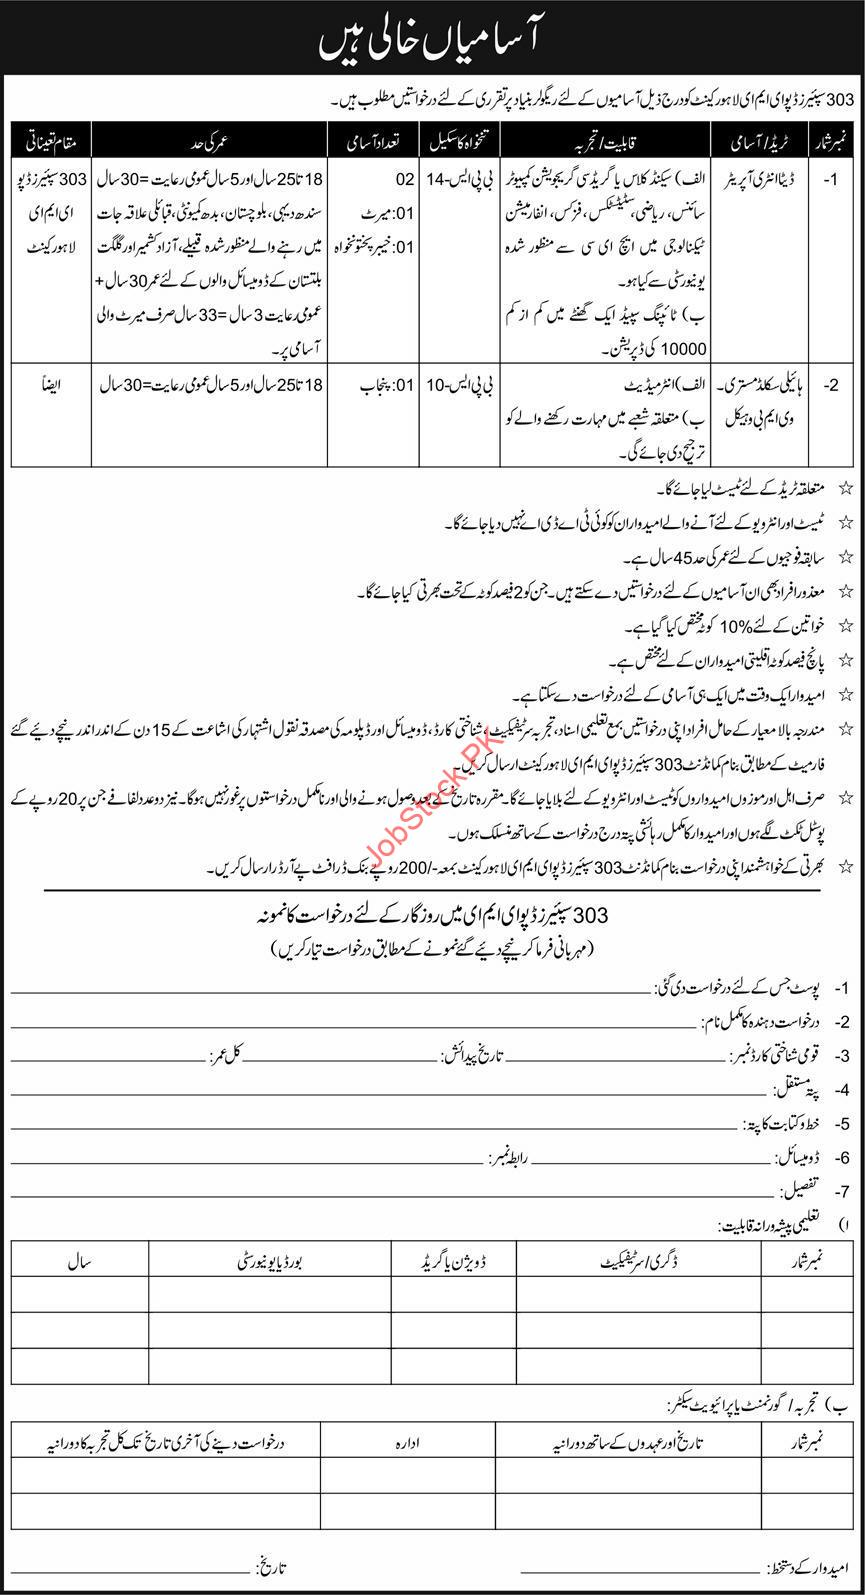 303 Spares Depot EME ahore Cantt Jobs 2021 Data Entry in Pakistan Army